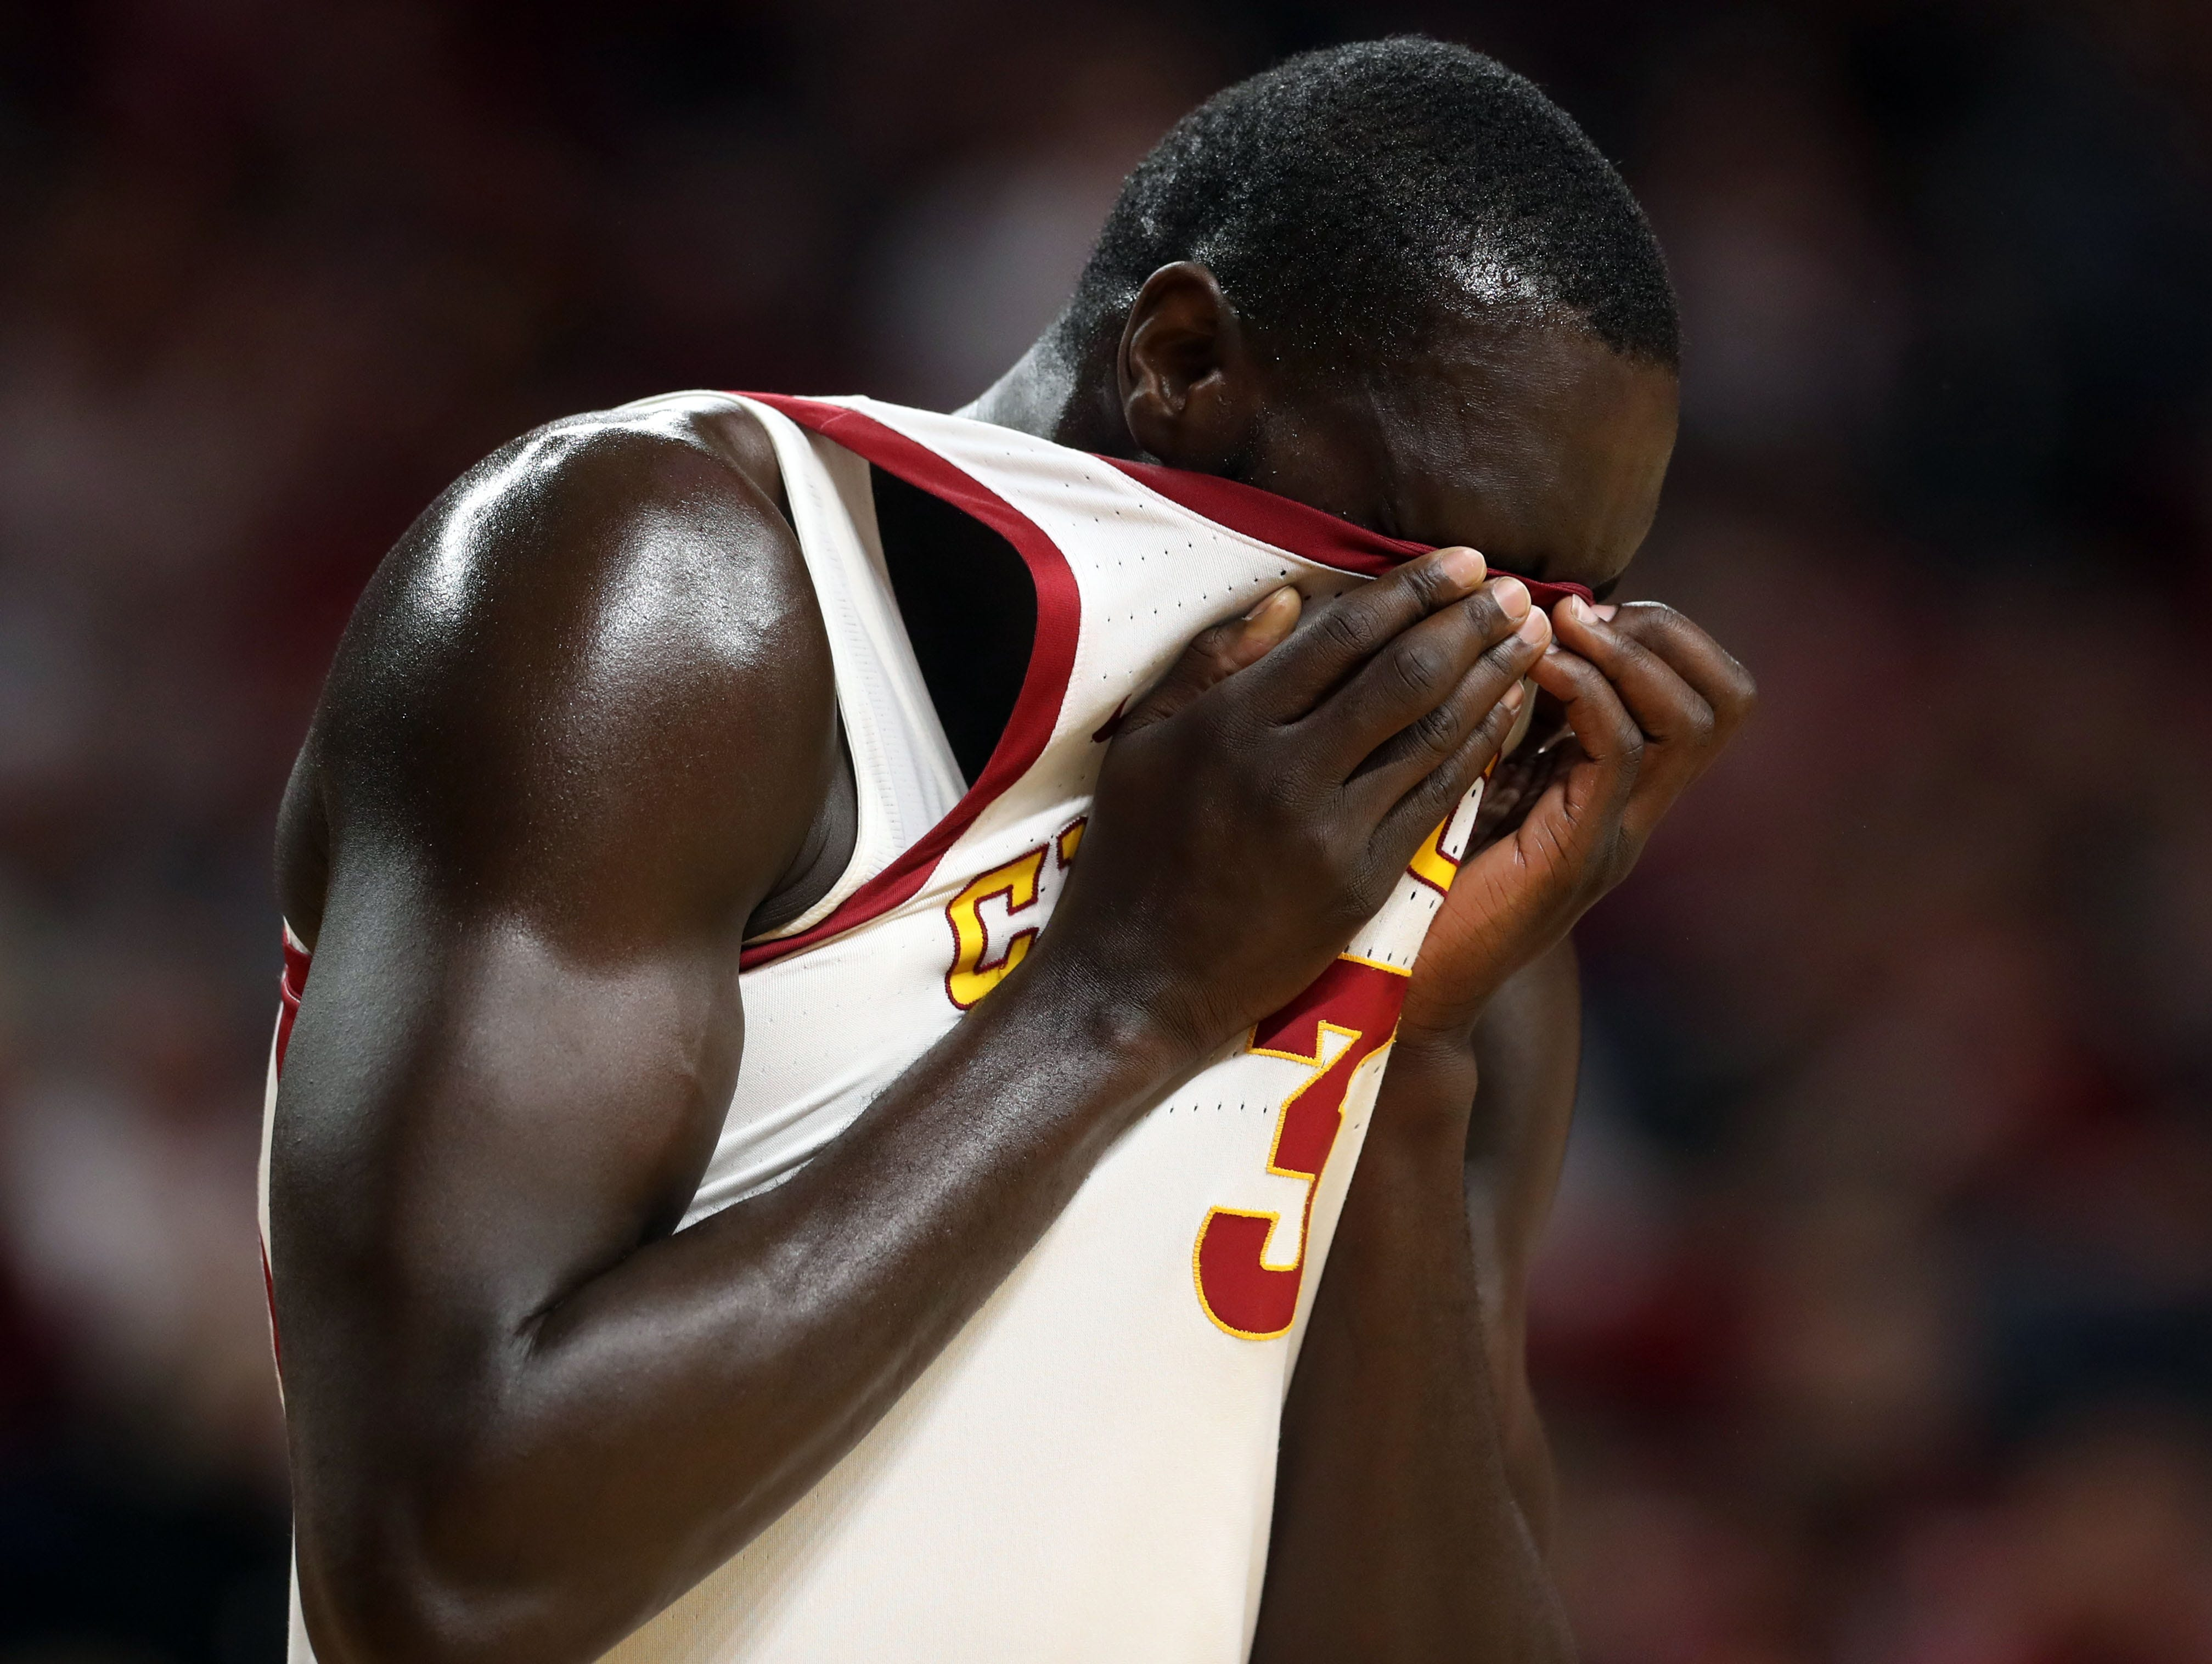 Iowa State Cyclones guard Marial Shayok (3) wipes his face in the second half against the Oklahoma Sooners at Hilton Coliseum. The Cyclones beat the sooners 78 to 61.